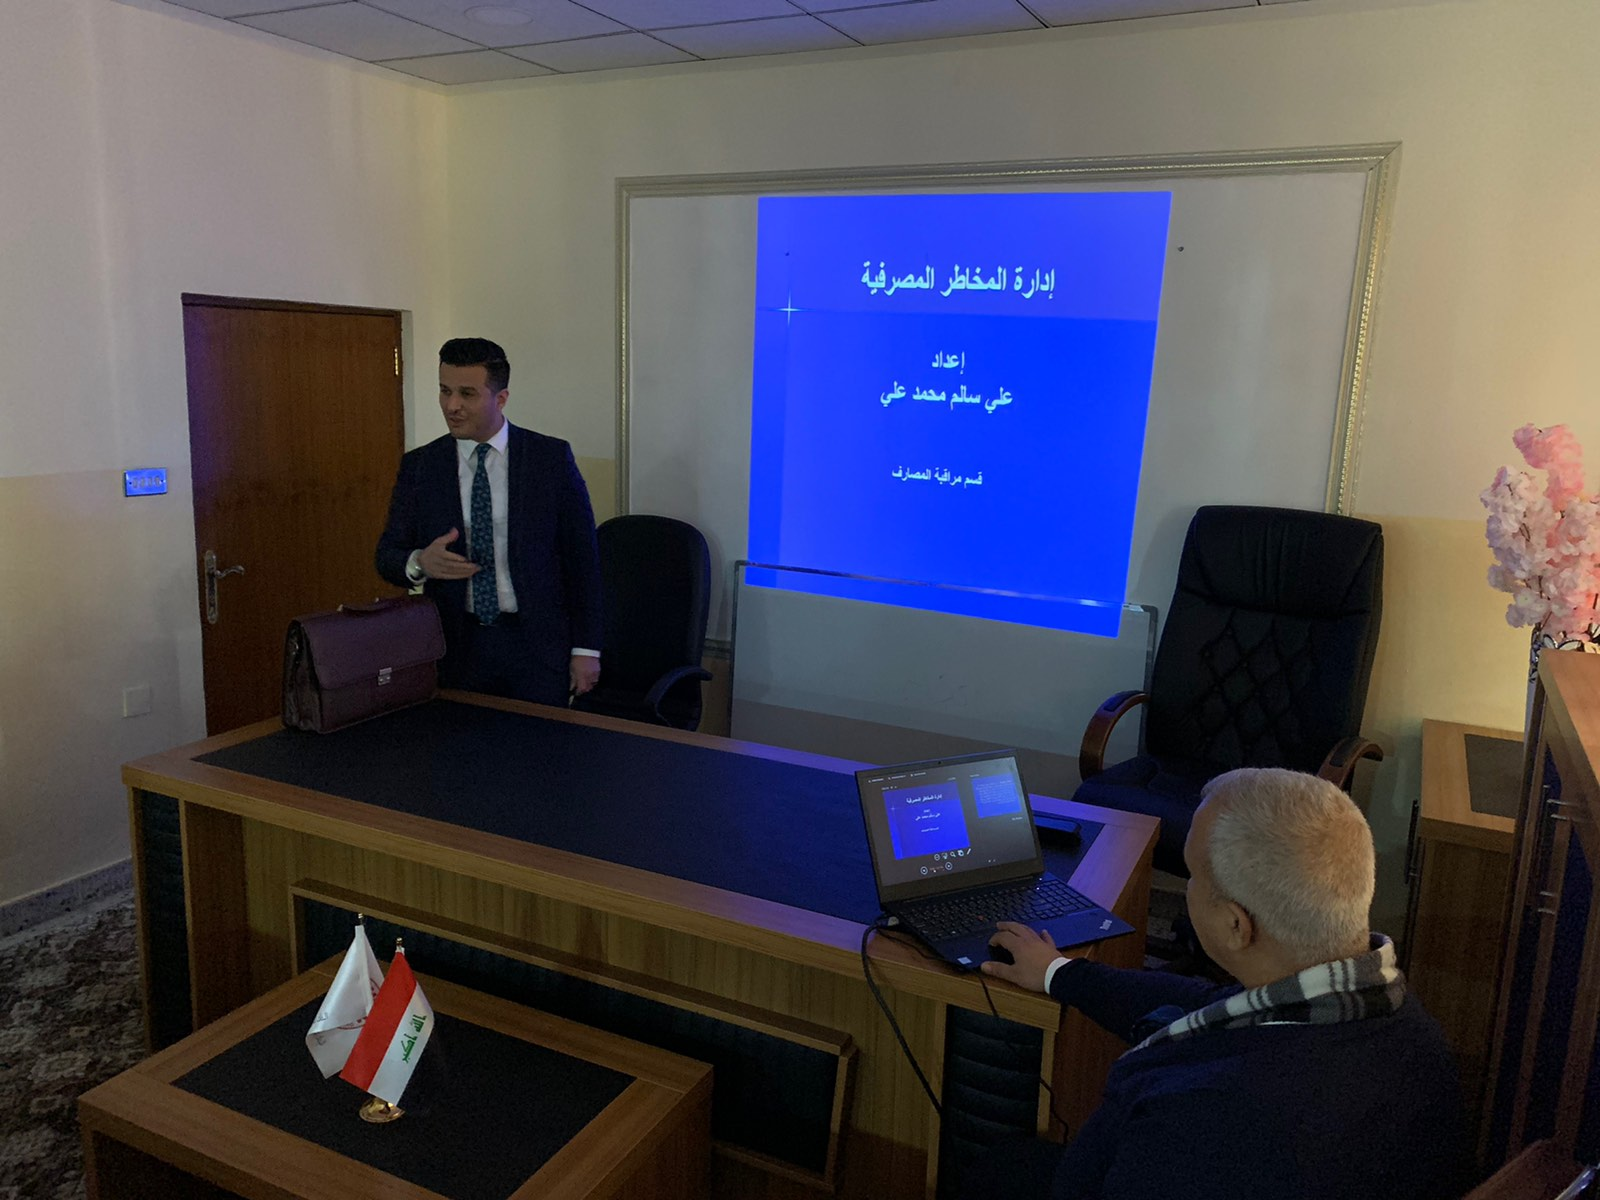 The Mosul branch organizes an introductory lecture to manage bank risks News-157942154720763